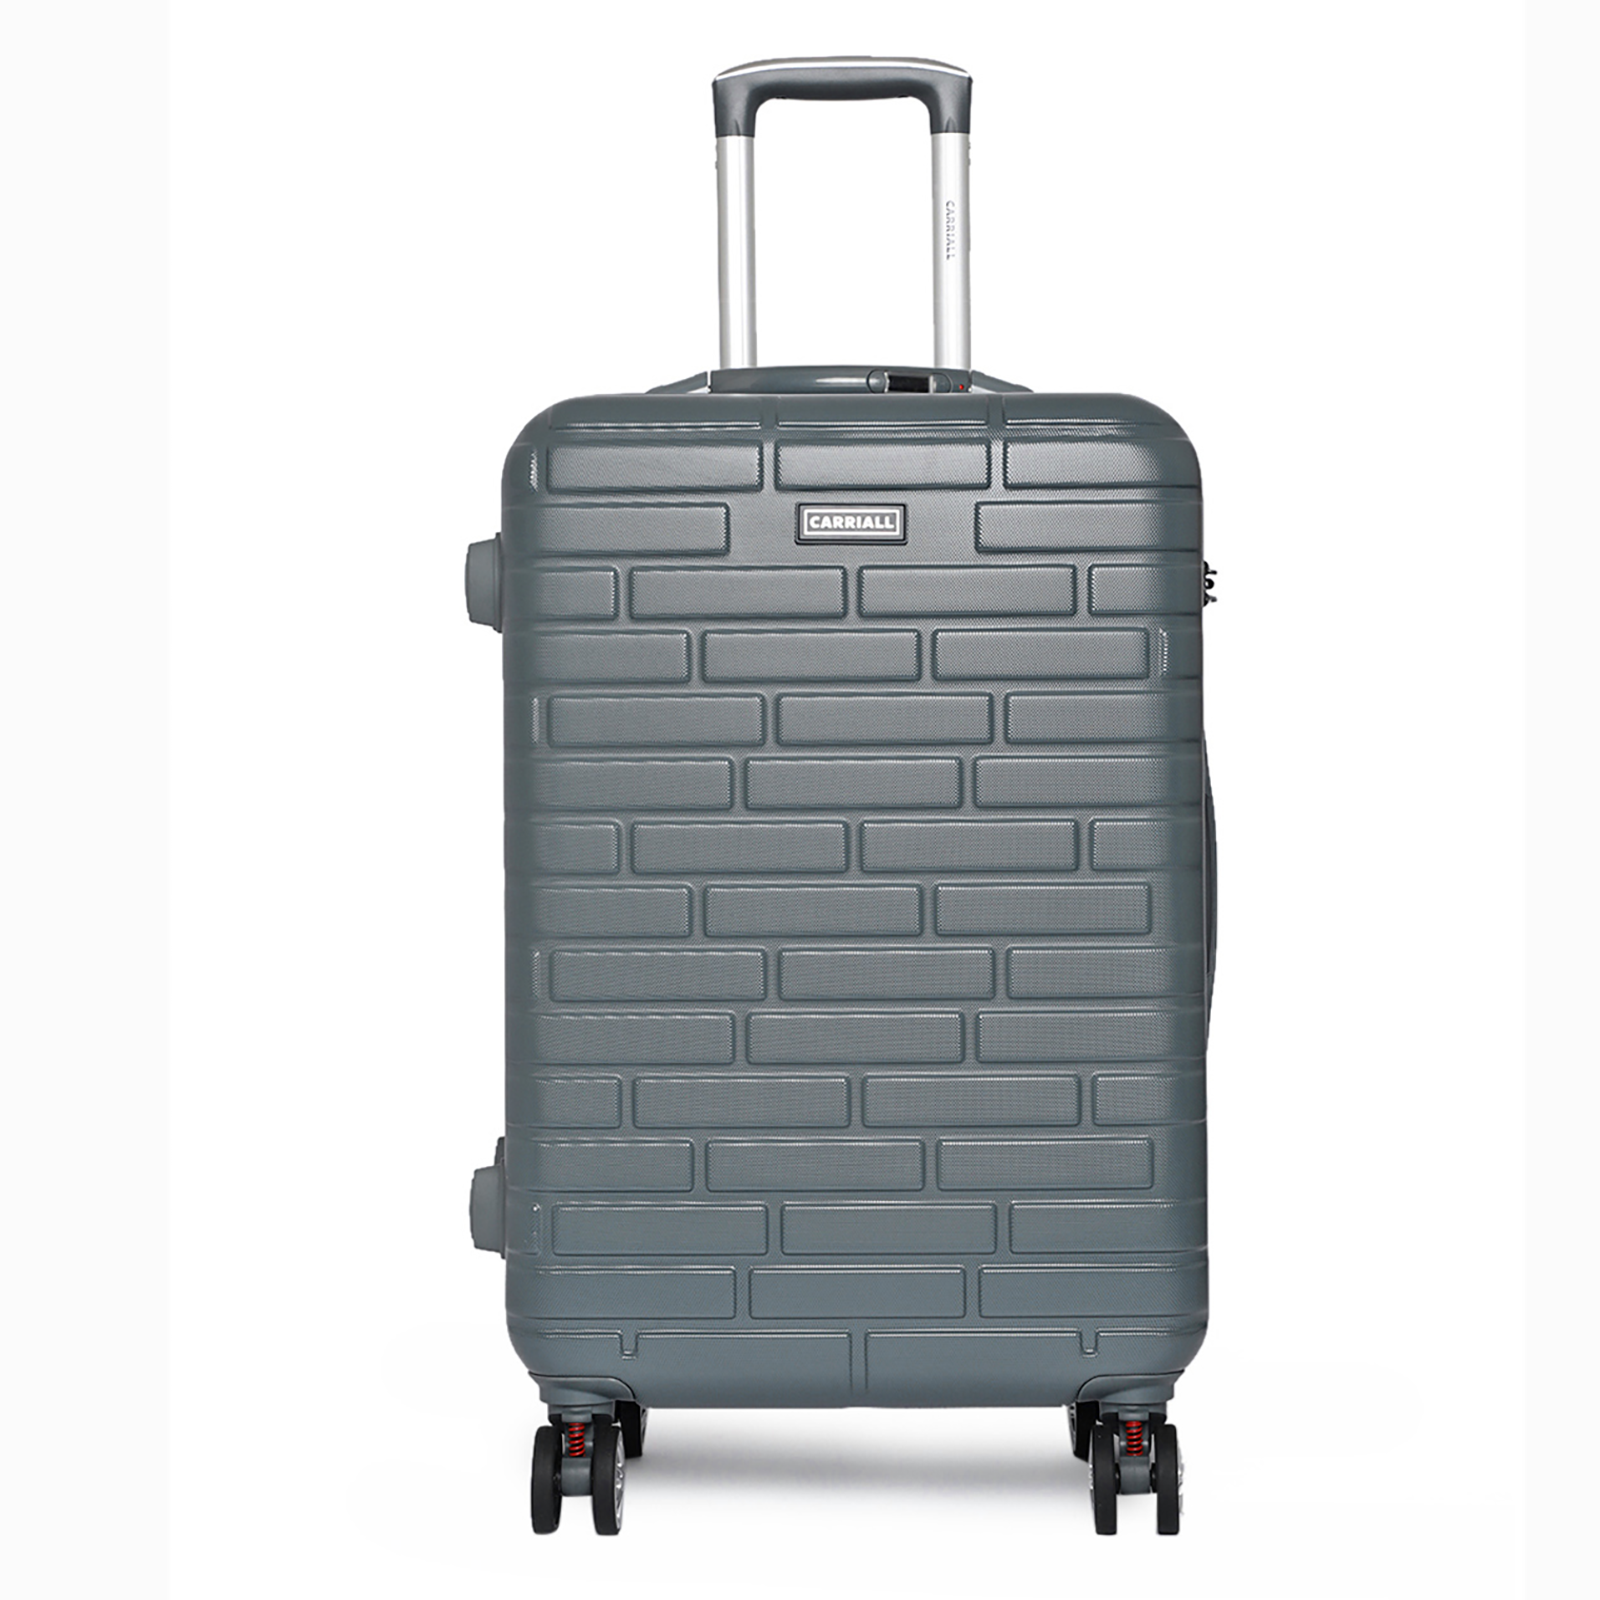 Carriall Planar Polycarbonate Trolley Bag (Built-In Weight Scale, USB Charging Port, CALM0003, Grey)_1